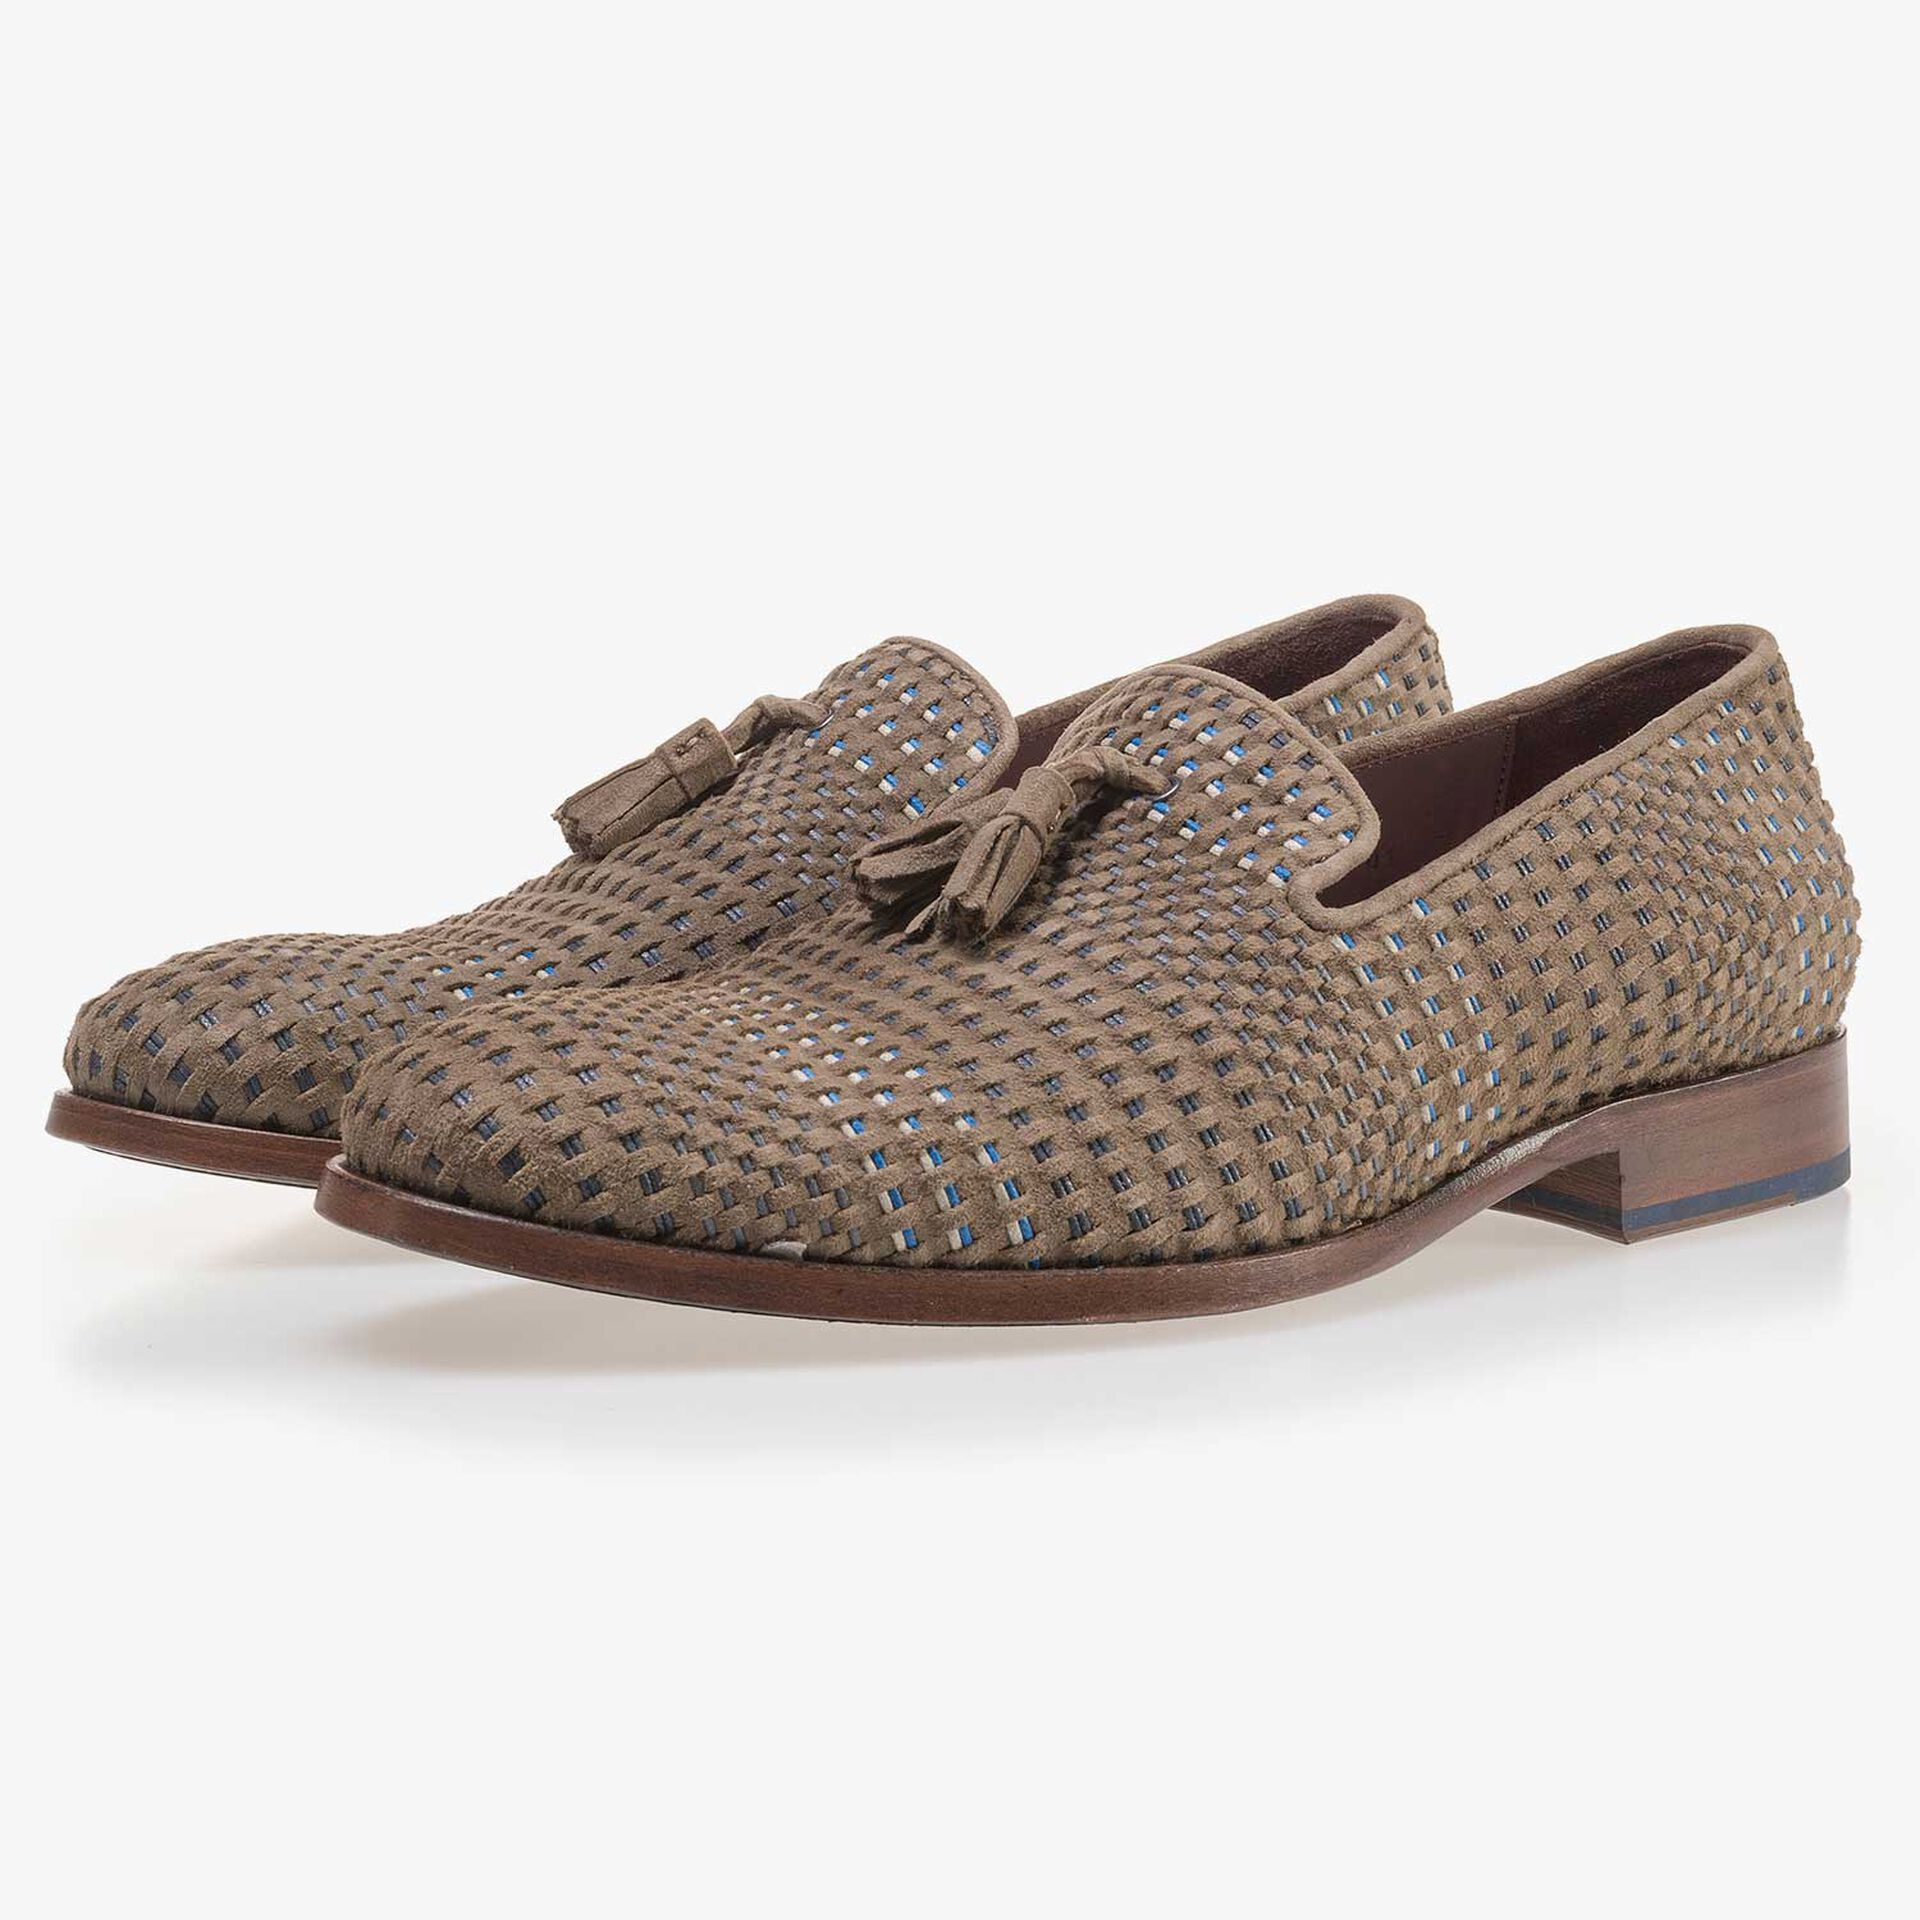 Taupe-coloured, braided suede leather loafer